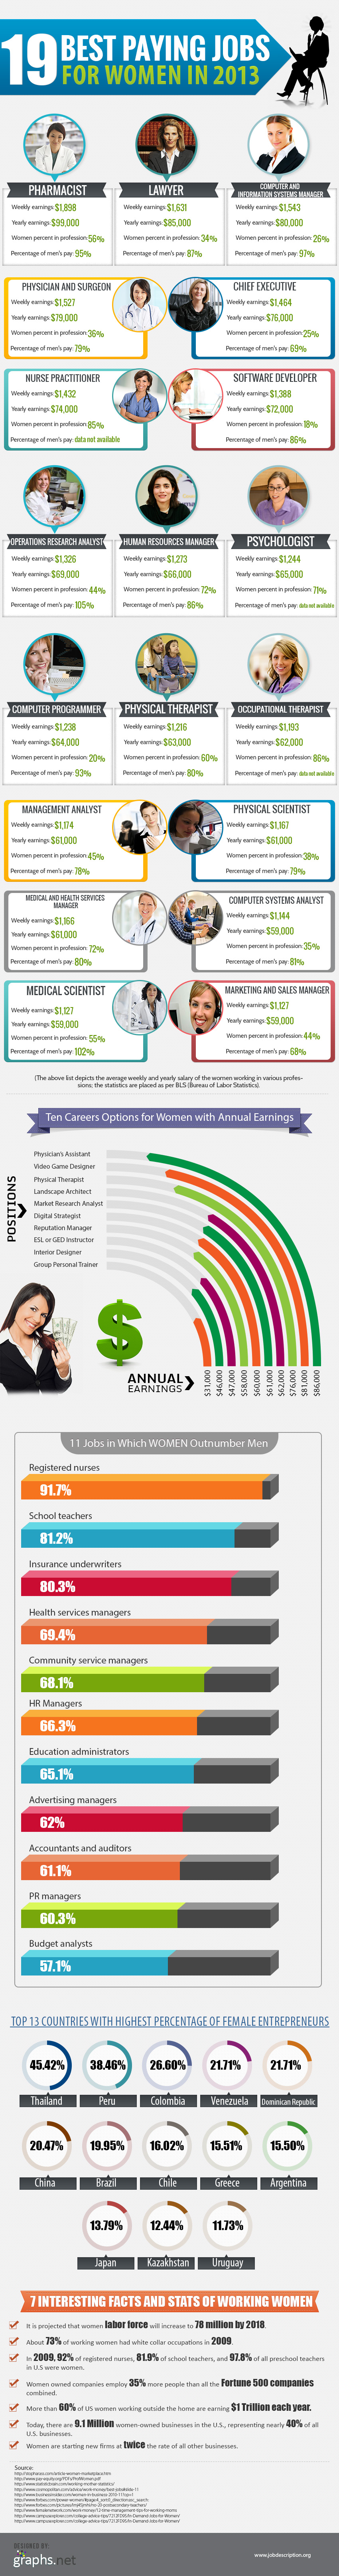 19 Best Paying Jobs for Women in 2013